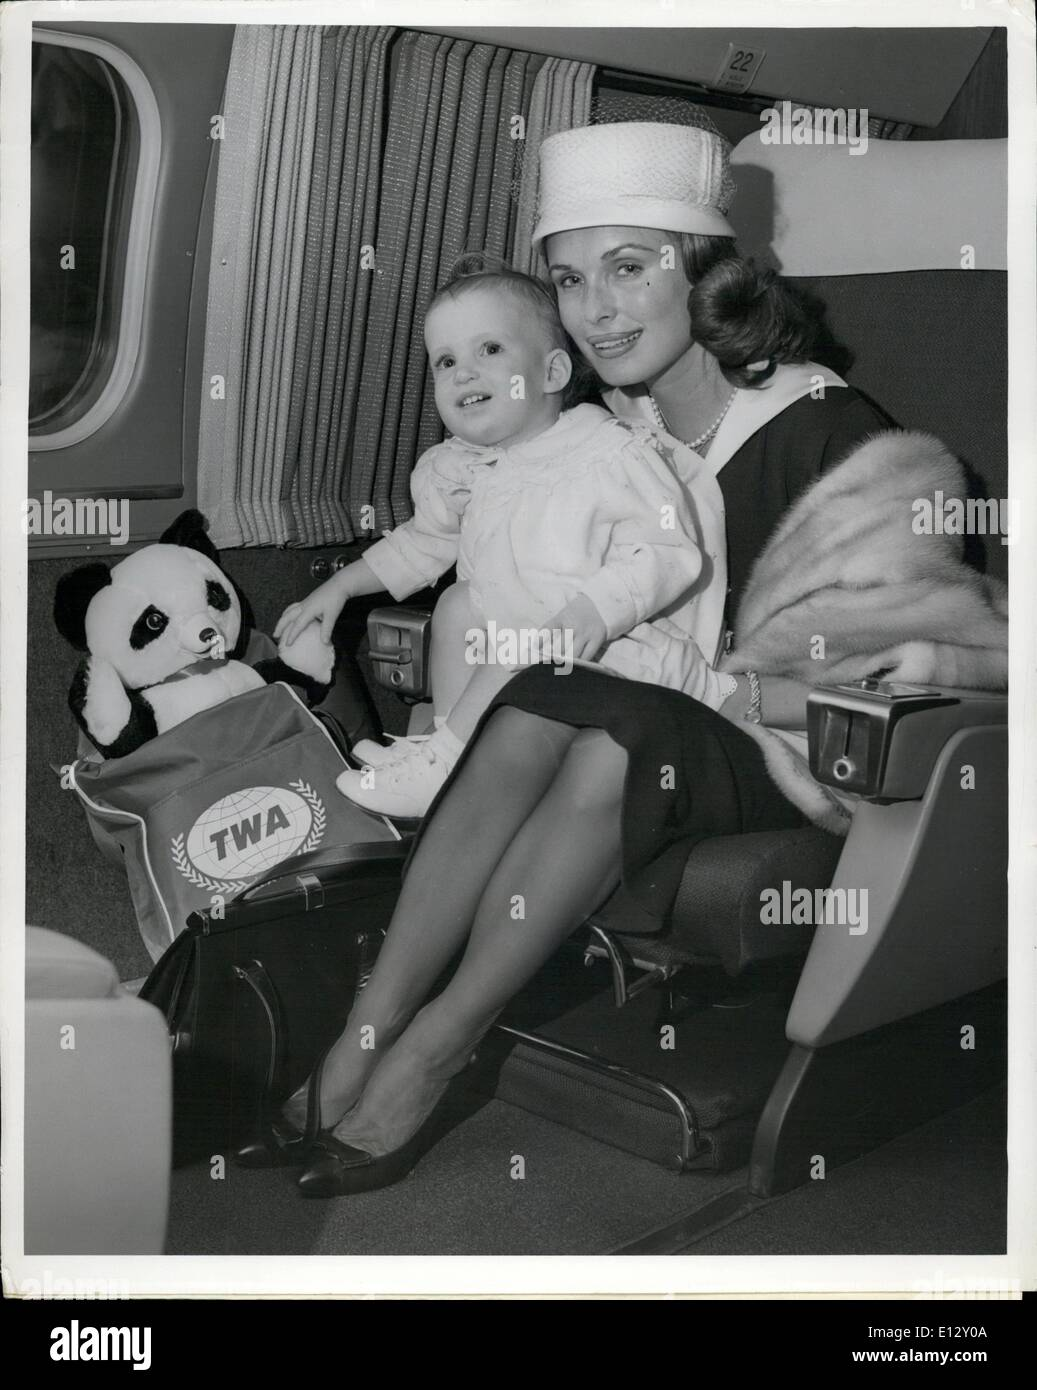 Feb. 26, 2012 - Idlewild Airport, N.Y., June 23 - Seventeen-Month Old Cutie Elizabeth Stack Reaches For Her Panda Traveling Friend While Sitting On Mommy's Lap. ''Mommy'' Happens To Be The Lovely Rosemarie Bow, Actress-Wife Of Screen Star Robert Stack. Mother And Daughter Are On Their Way To Madrid, Via A TWA Jetstream, To Join Bor Who Is On Location There. Rosemarie Recently Gave Birth To A Son. - Stock Image